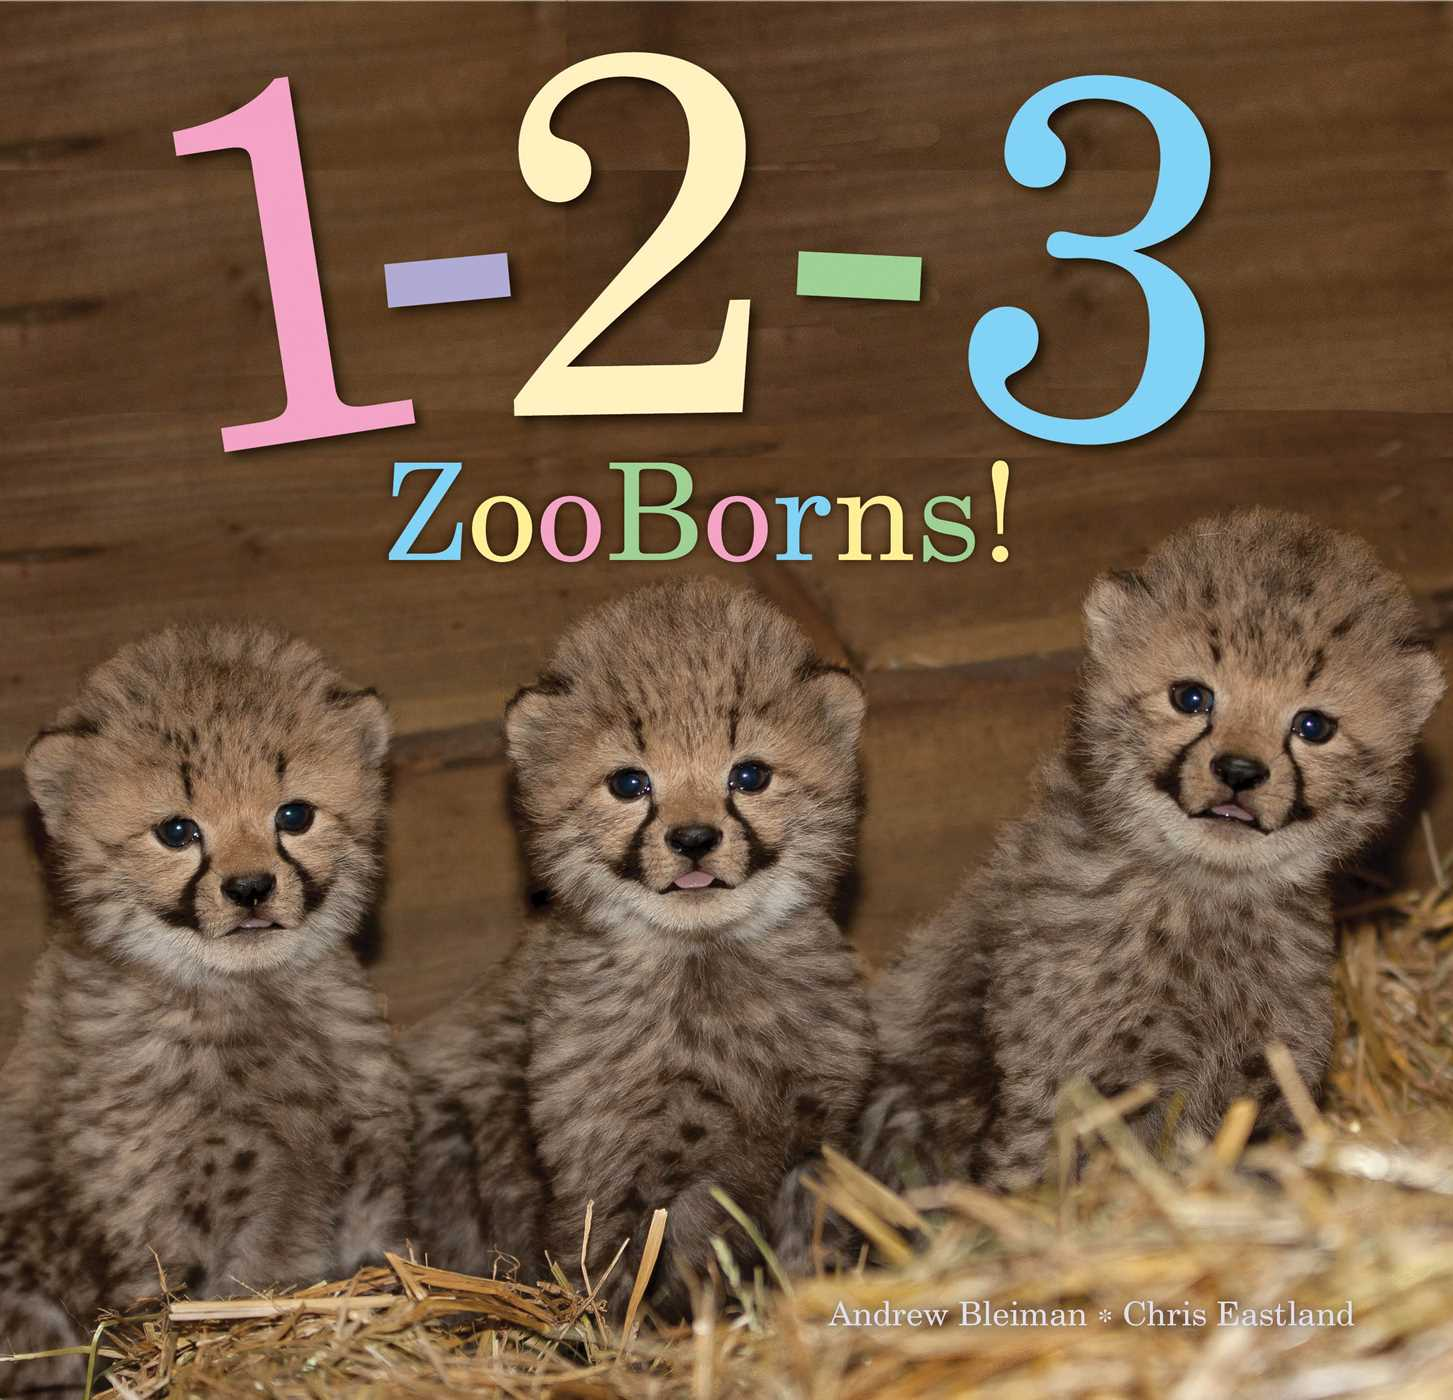 1 2 3 zooborns 9781481491747 hr